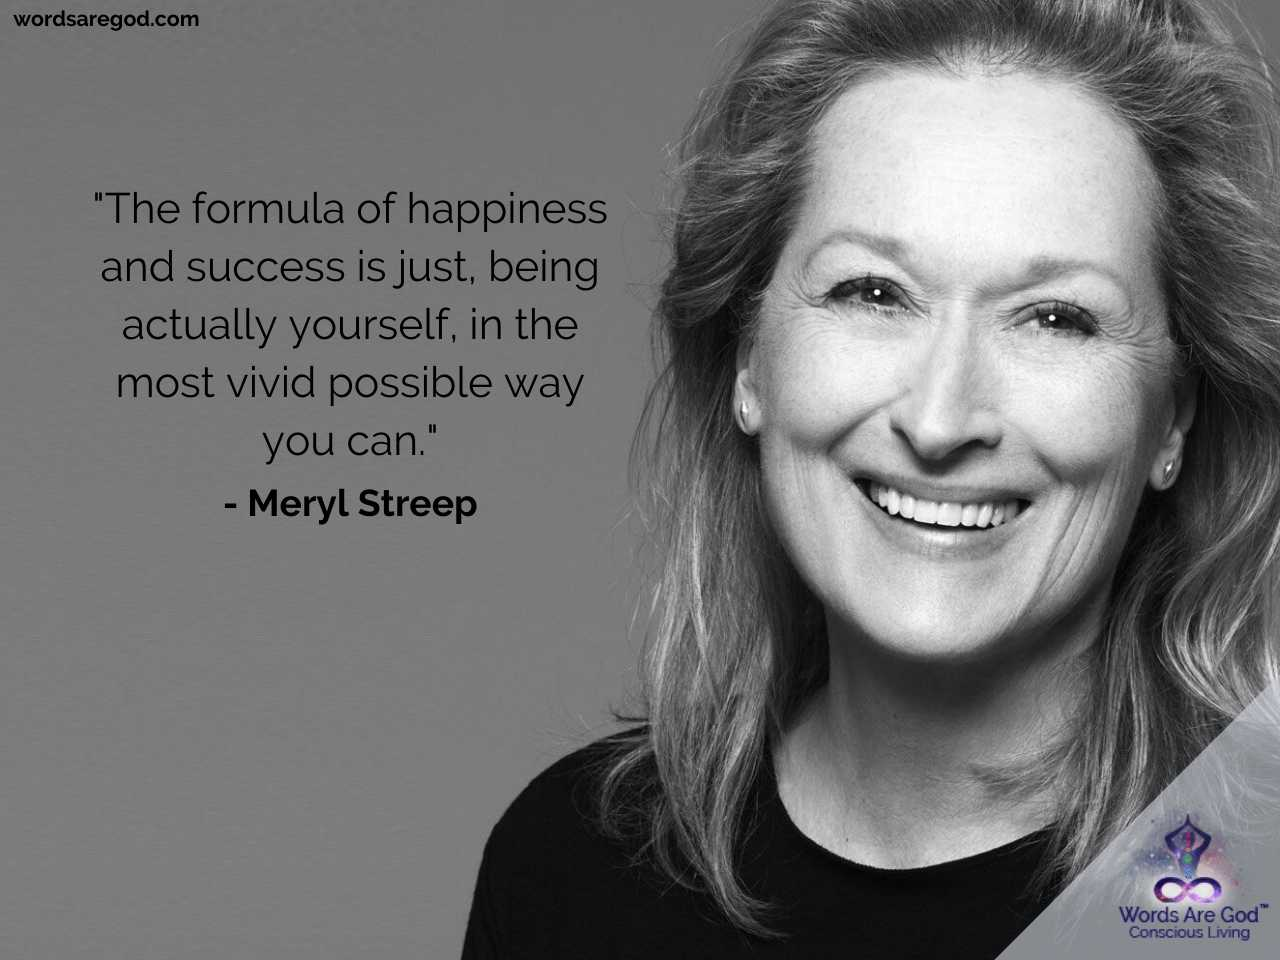 Meryl streep Best Quotes by Meryl Streep